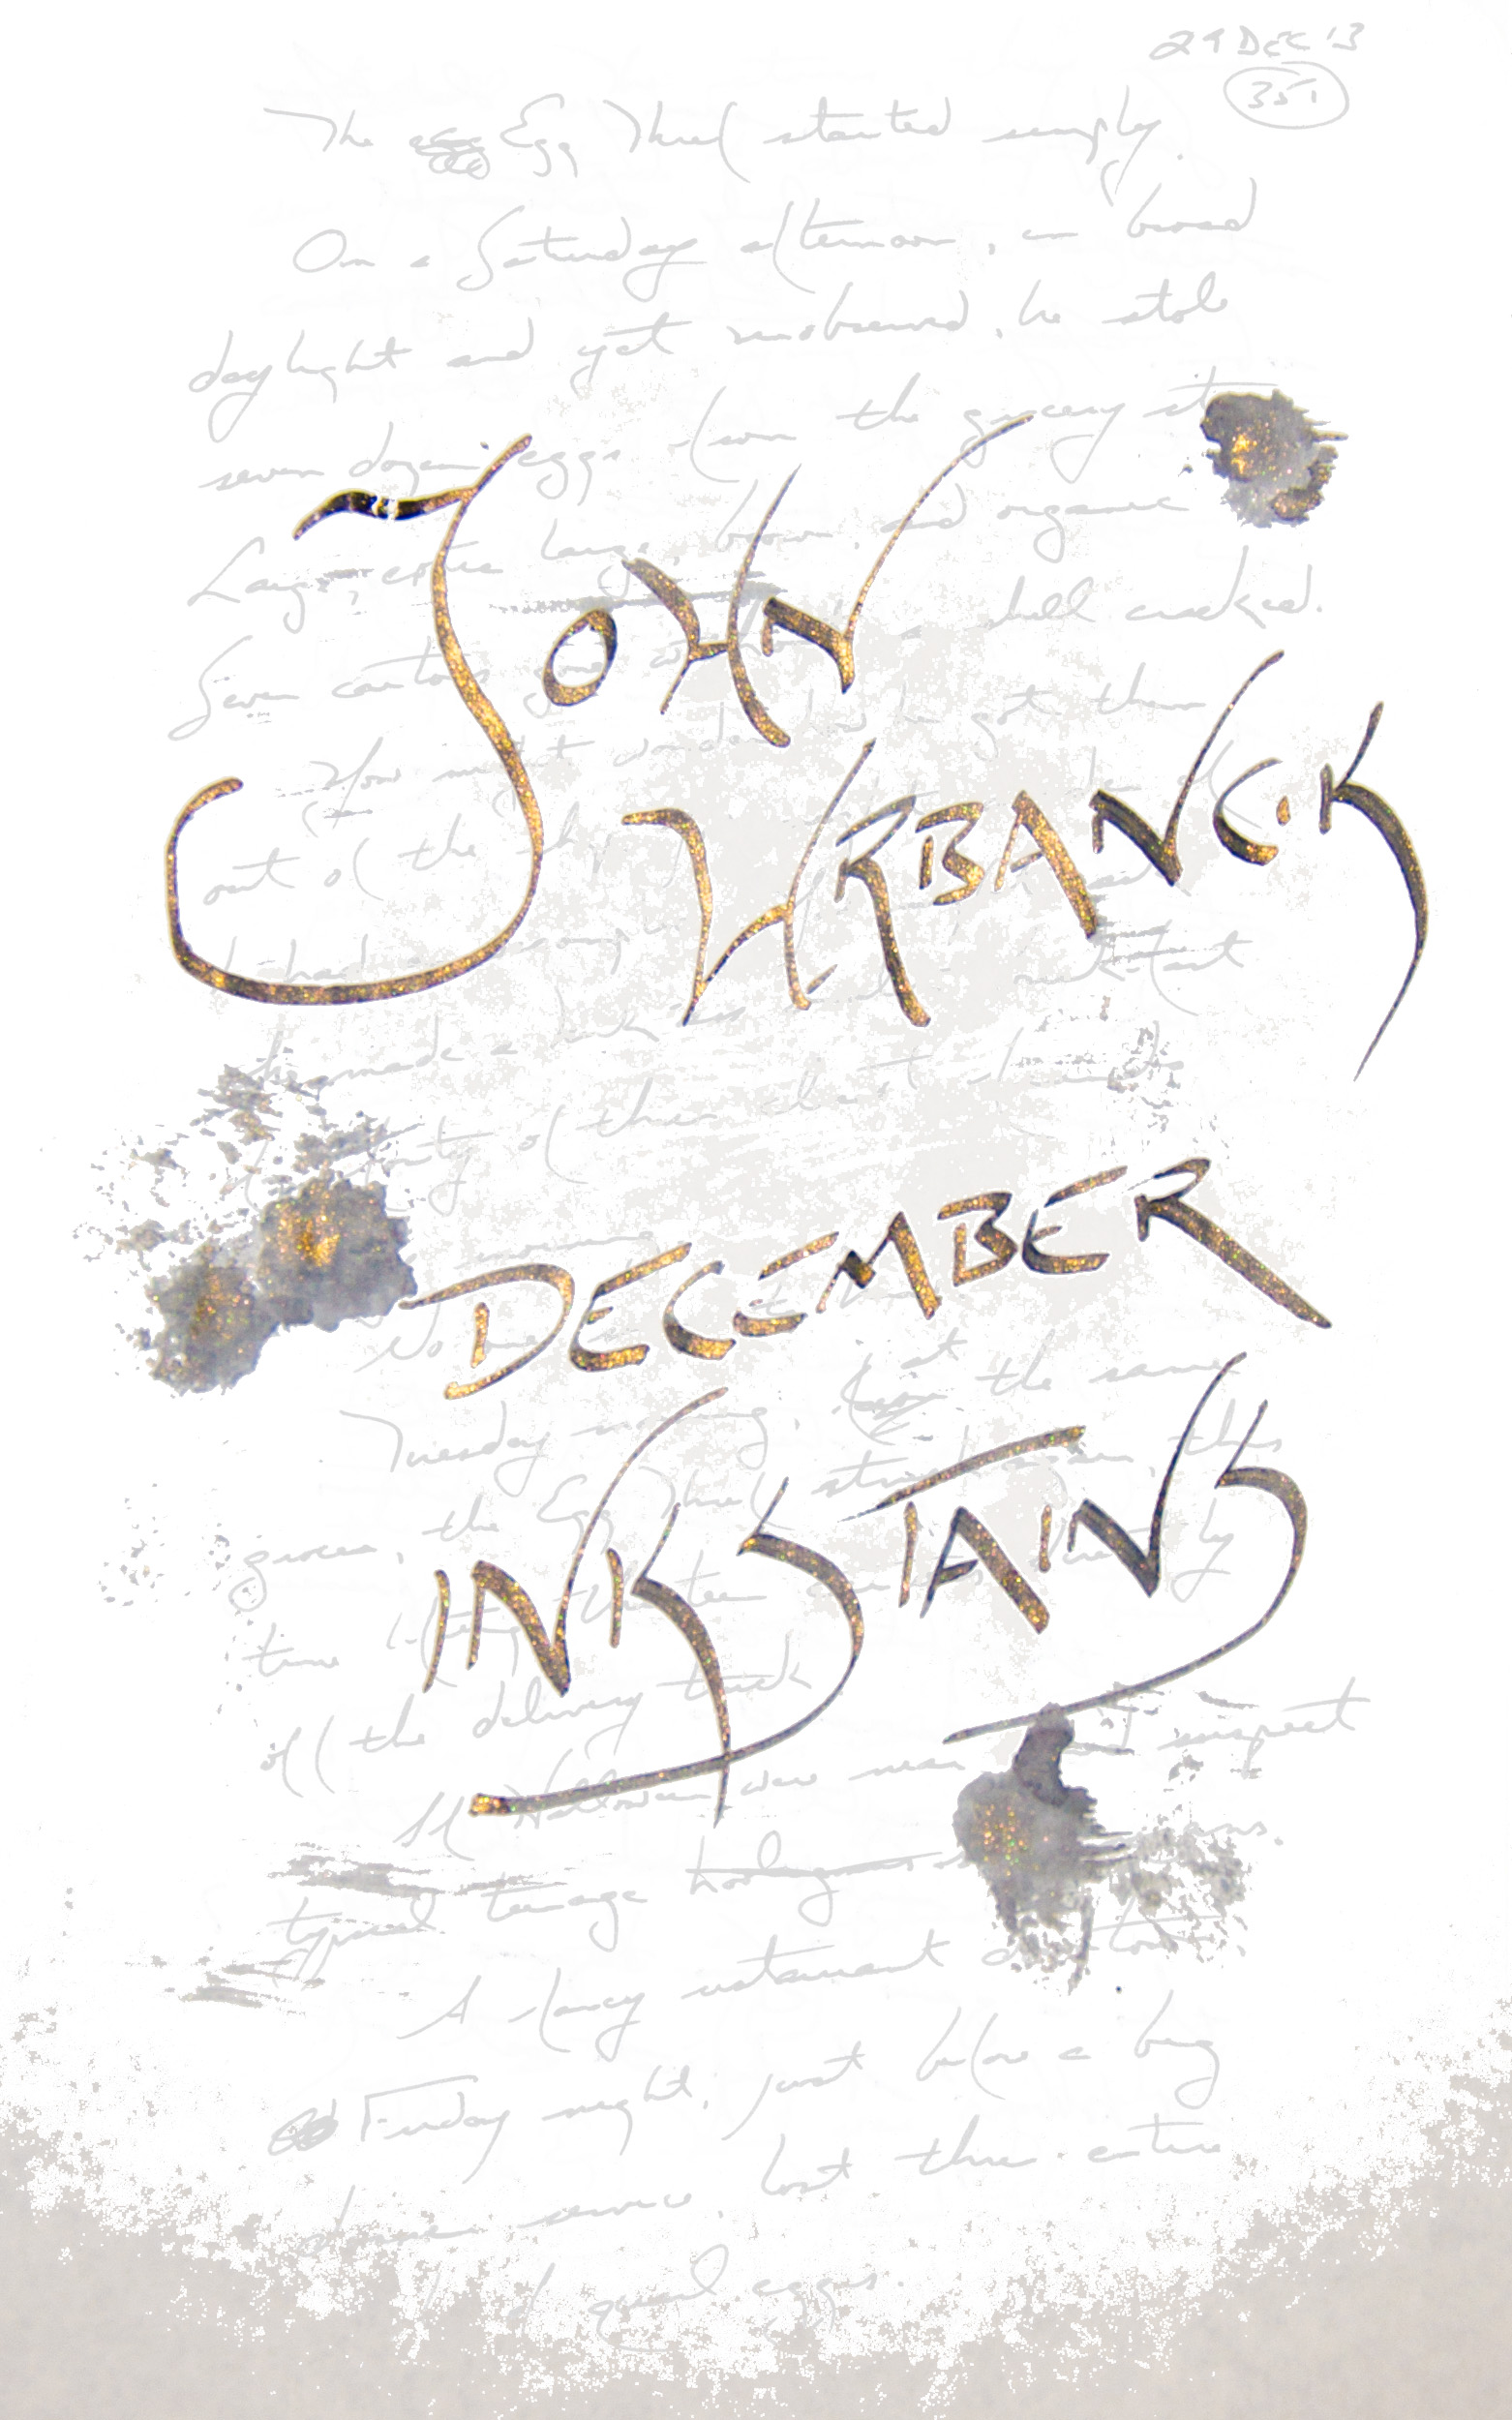 InkStains December